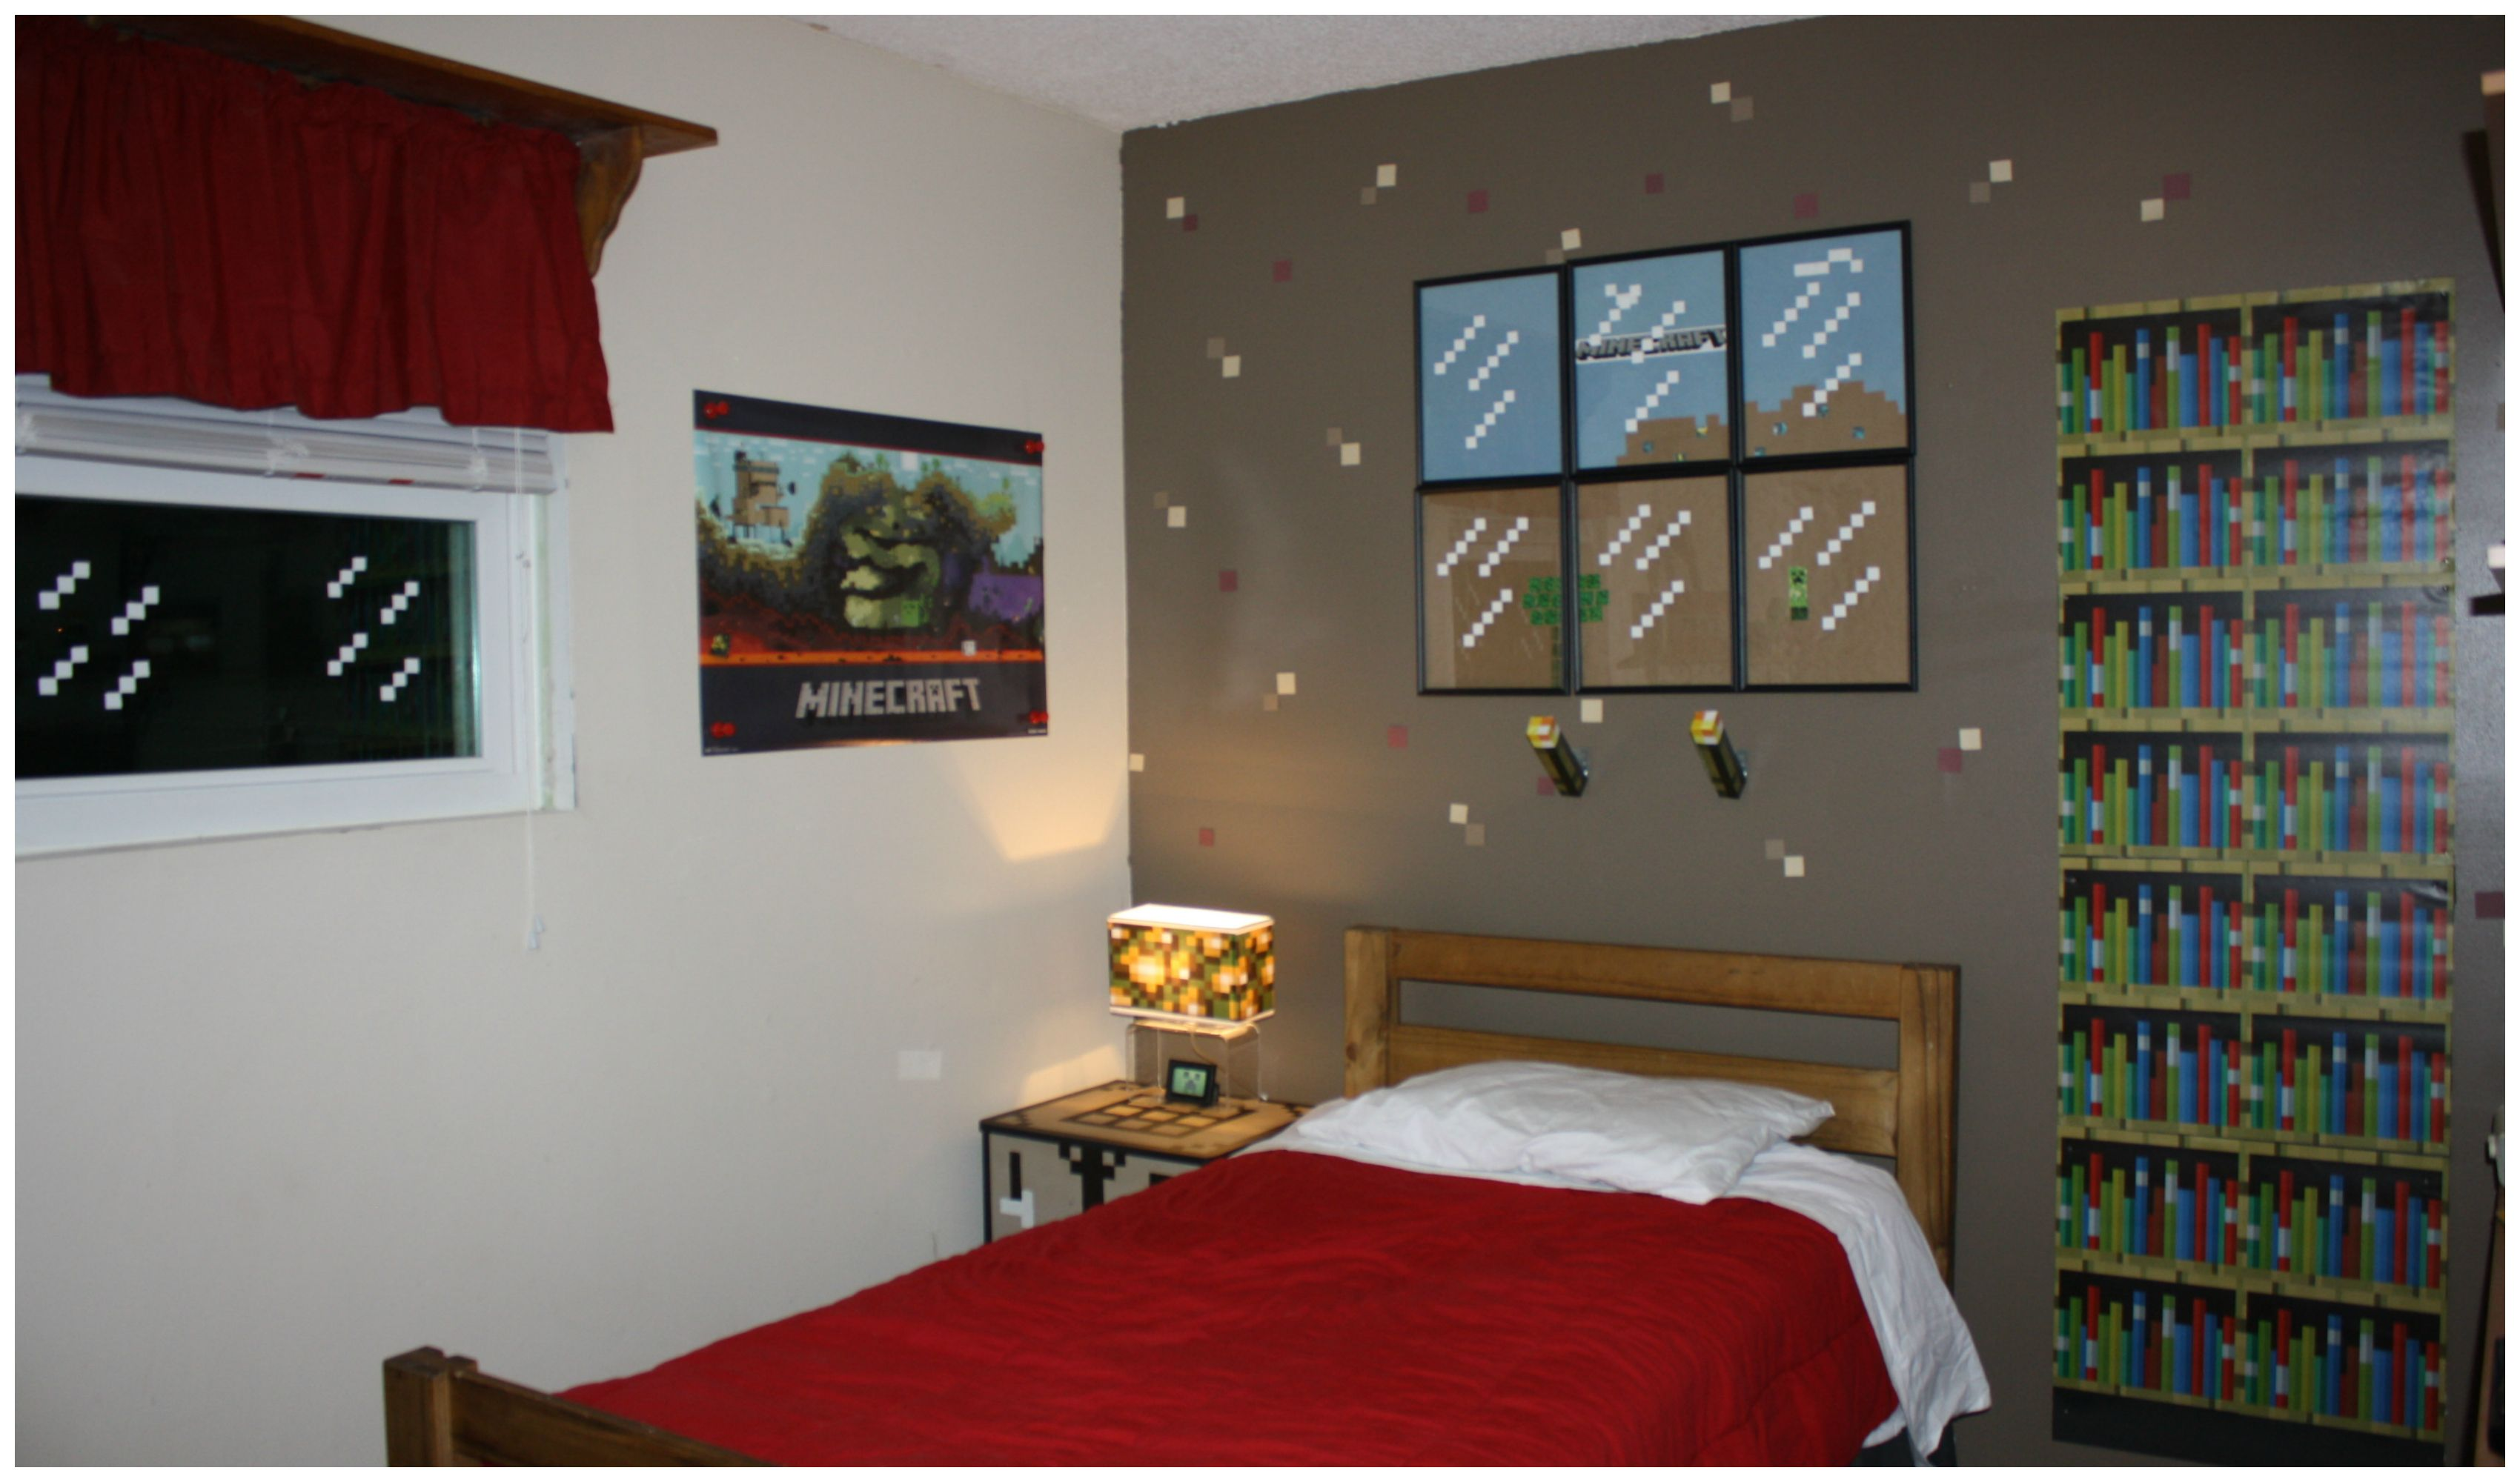 The Most Awesome Minecraft Bedroom Makeover Minecraft Bedroom